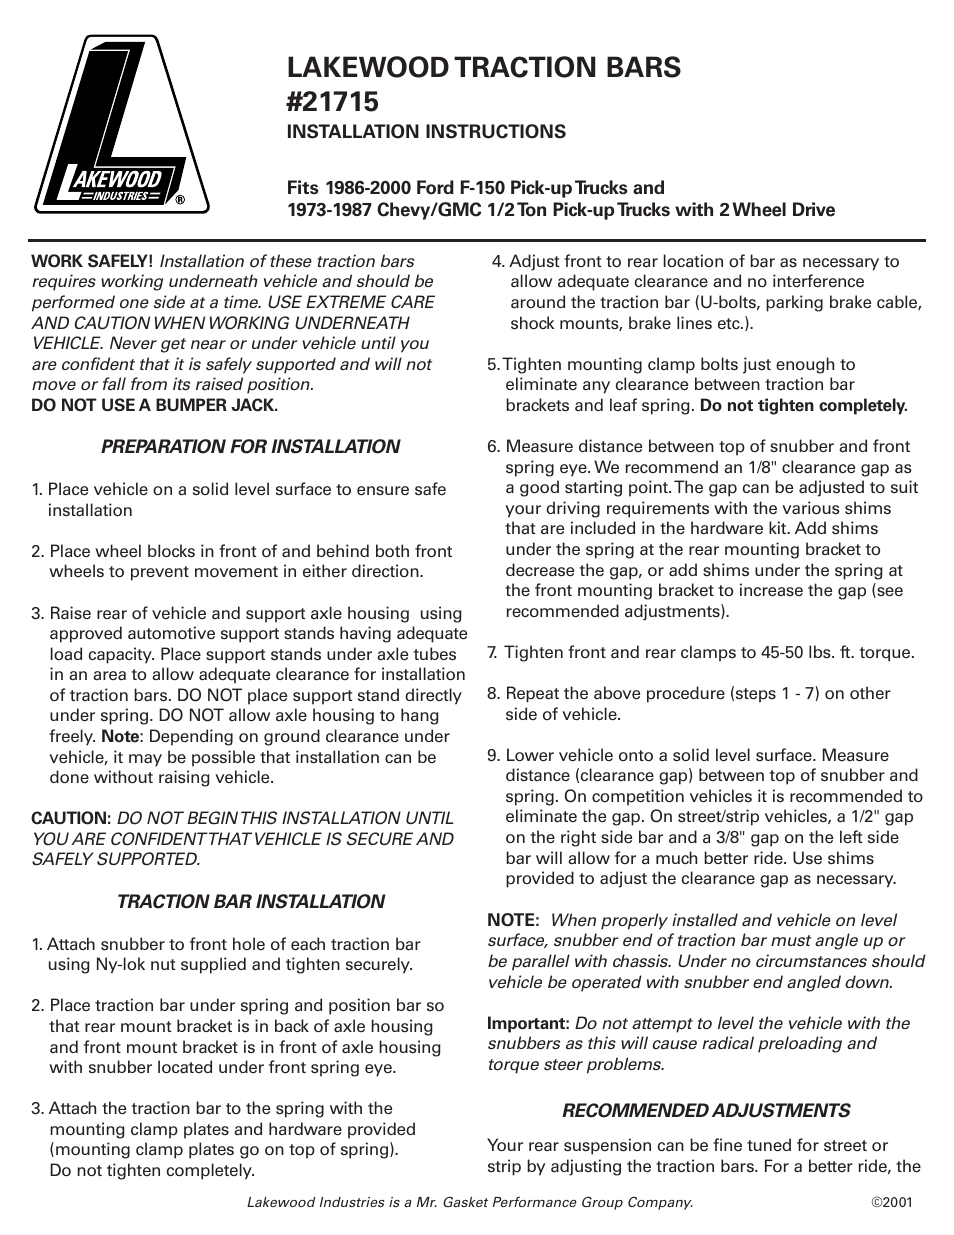 Mallory Ignition Lakewood traction bars 21715 User Manual   2 pages